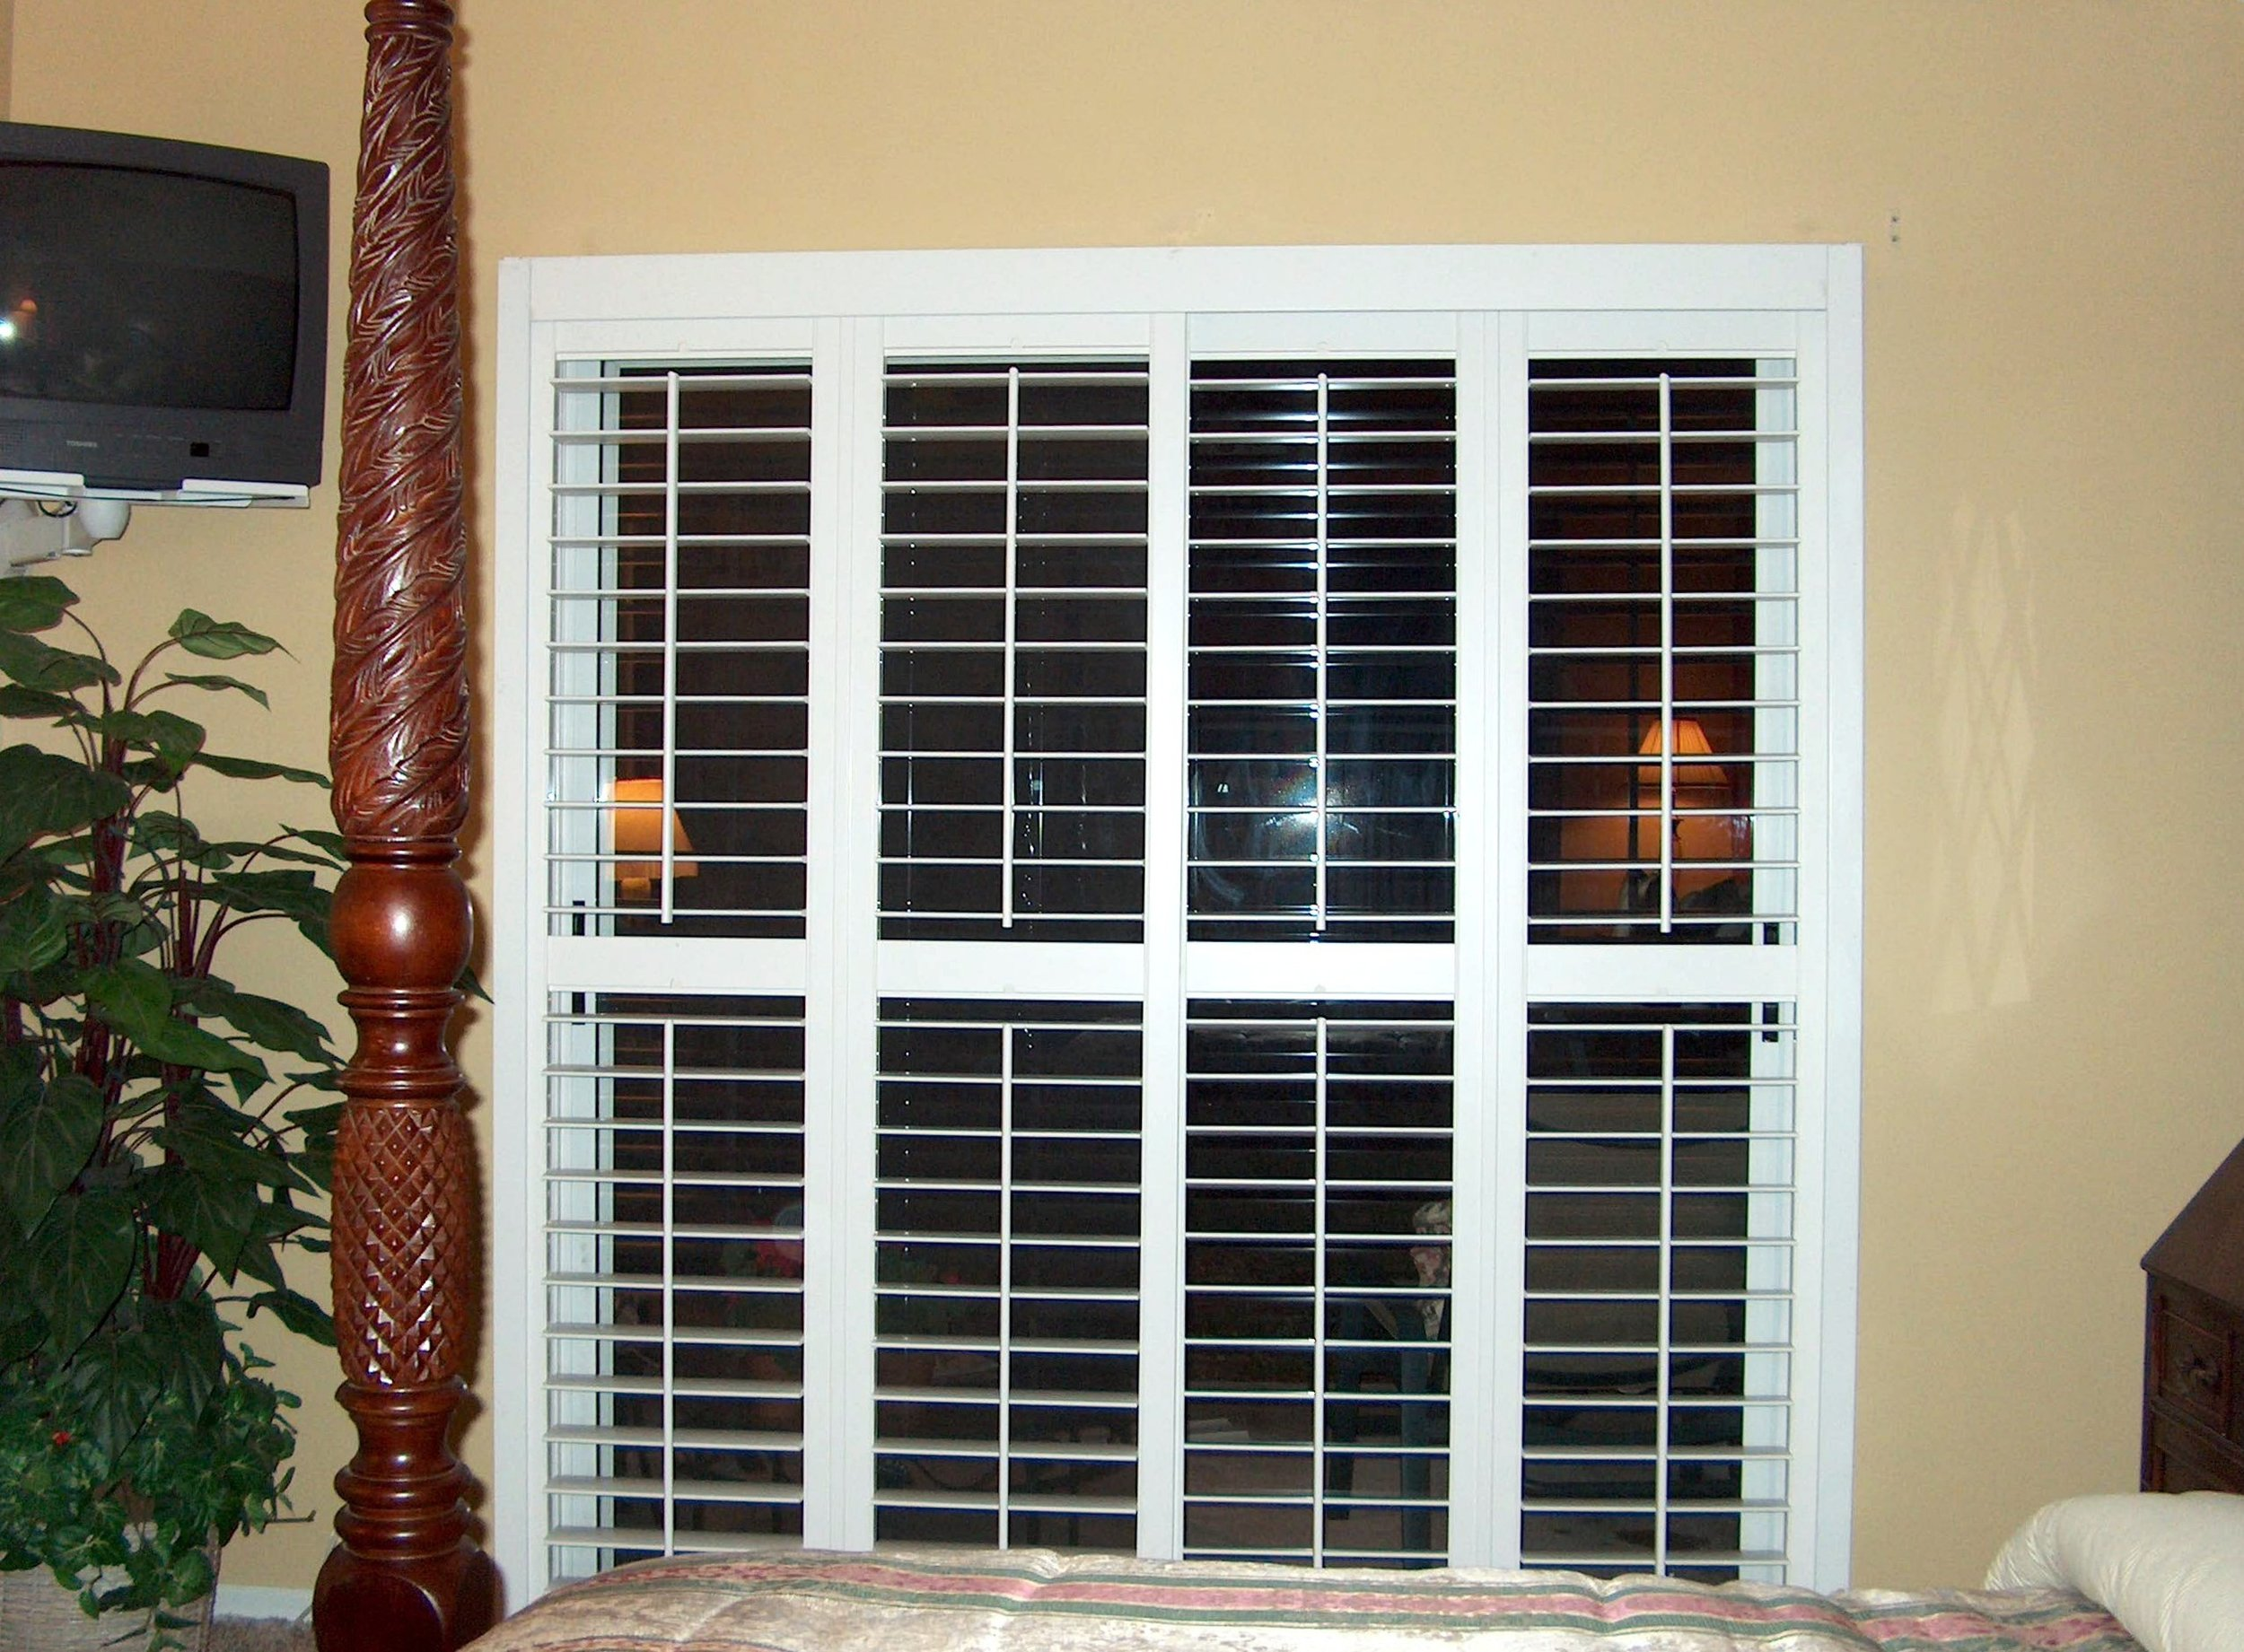 Poly Shutters in their full coverage position